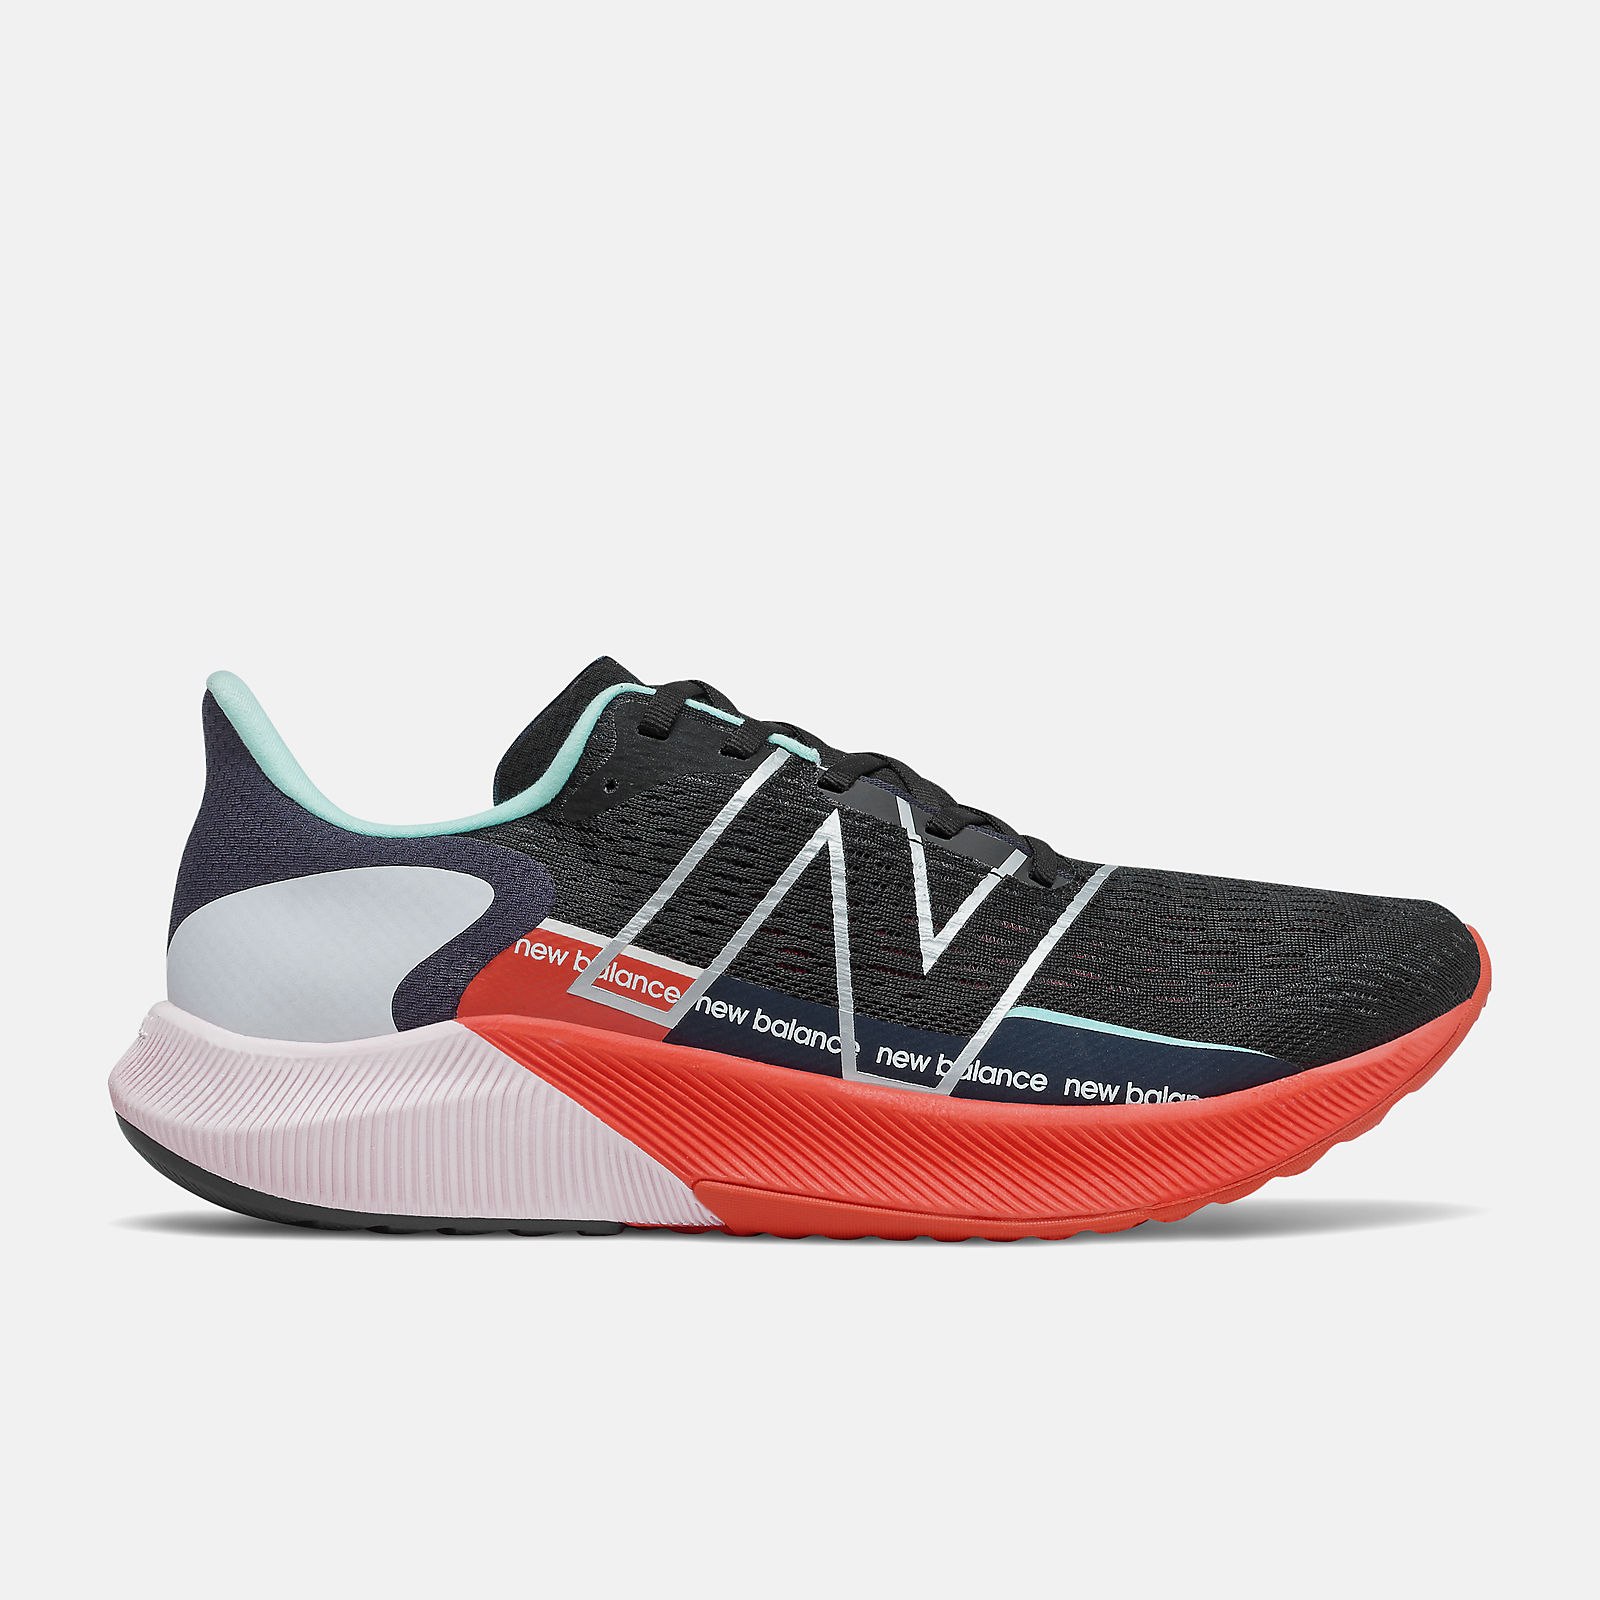 FuelCell Propel v2 - New Balance